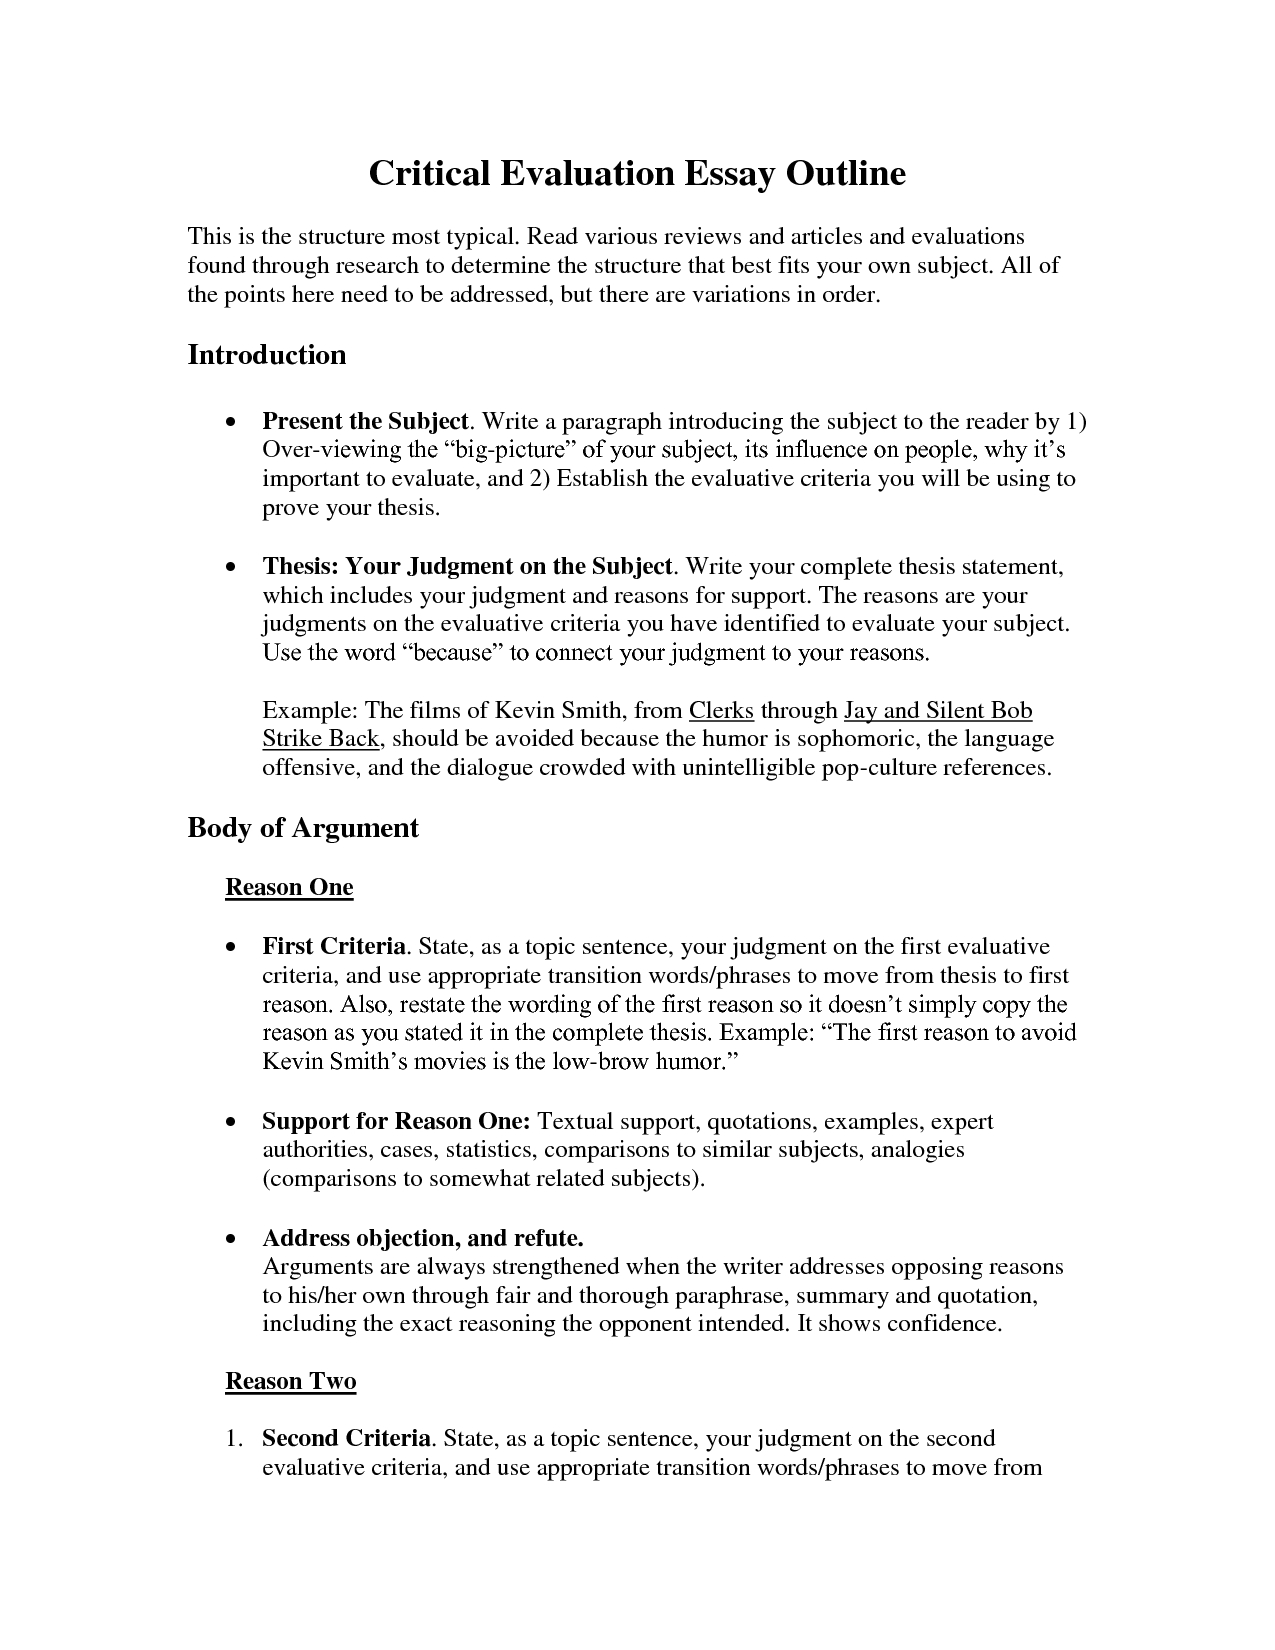 006 Discuss Literature Review Benefits Of Social Media Creative Evaluation Argument Essay Topics Critical Outline 1 Awful Questions With Criteria Full